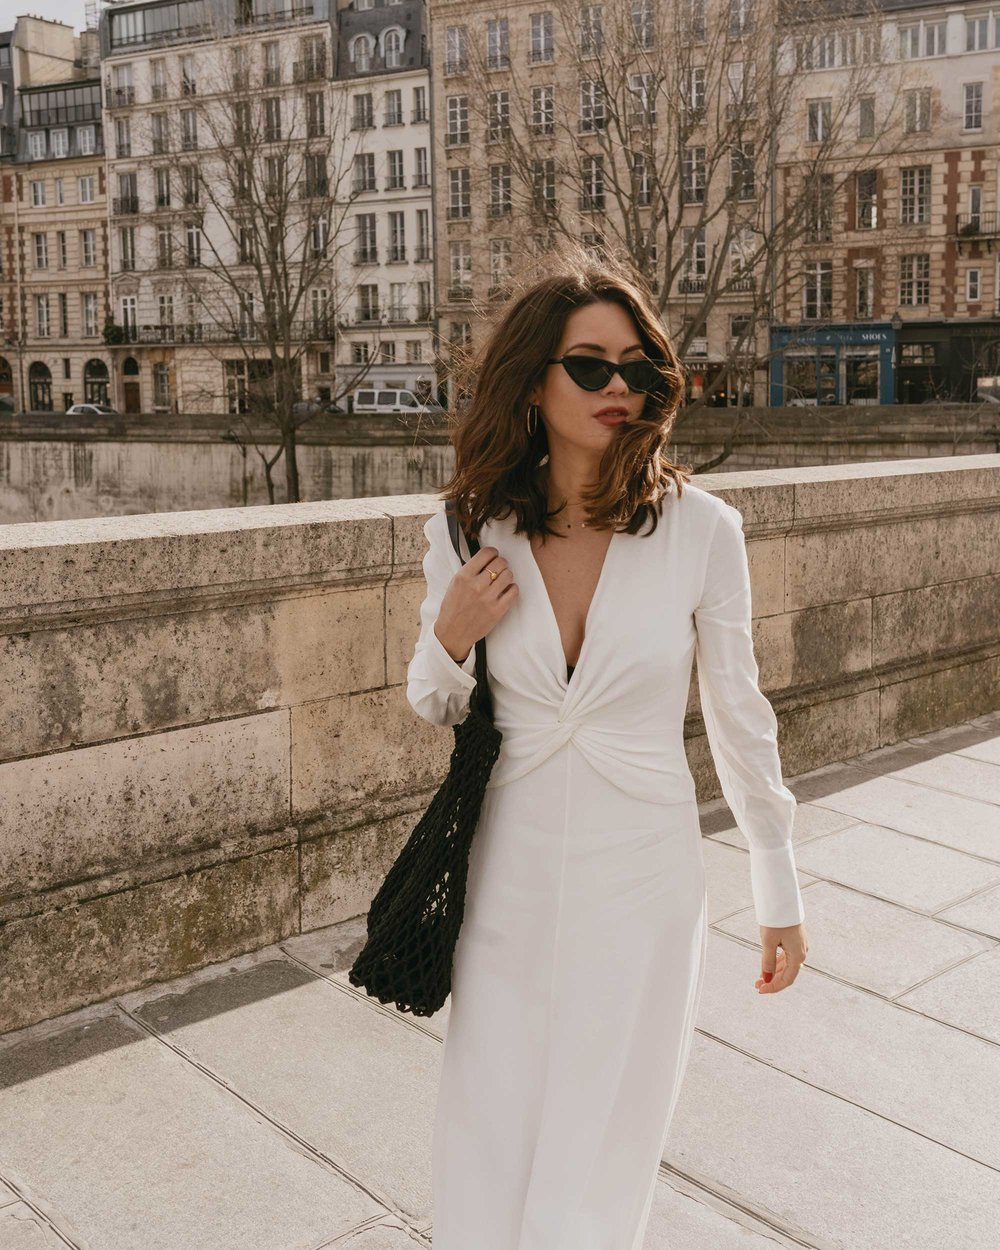 Sarah Butler of Sarah Styles Seattle wears Equipment Faun crepe midi dress with a flatteringly knotted front and plunging neckline in Paris, France | @sarahchristine, Seattle Blogger - 1.jpg